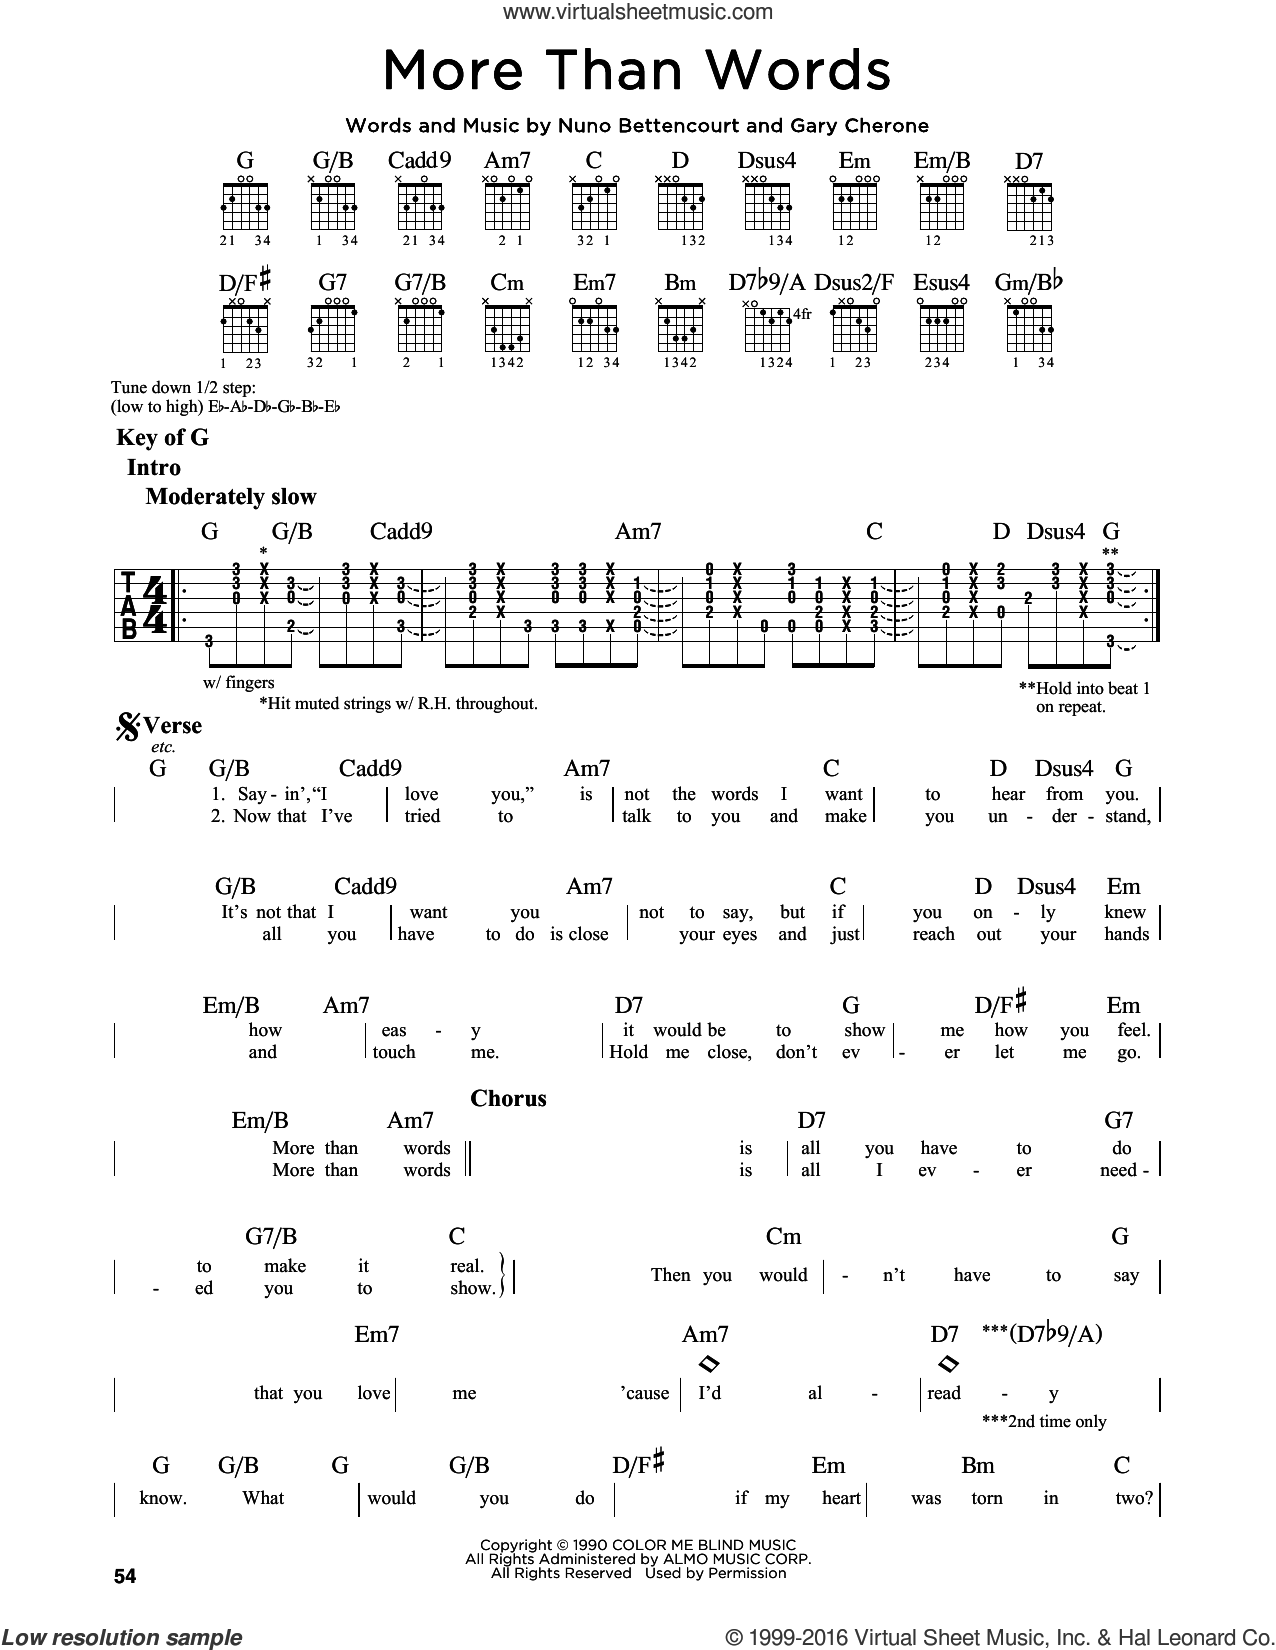 More Than Words sheet music for guitar solo (lead sheet) by Extreme, Gary Cherone and Nuno Bettencourt, intermediate guitar (lead sheet). Score Image Preview.